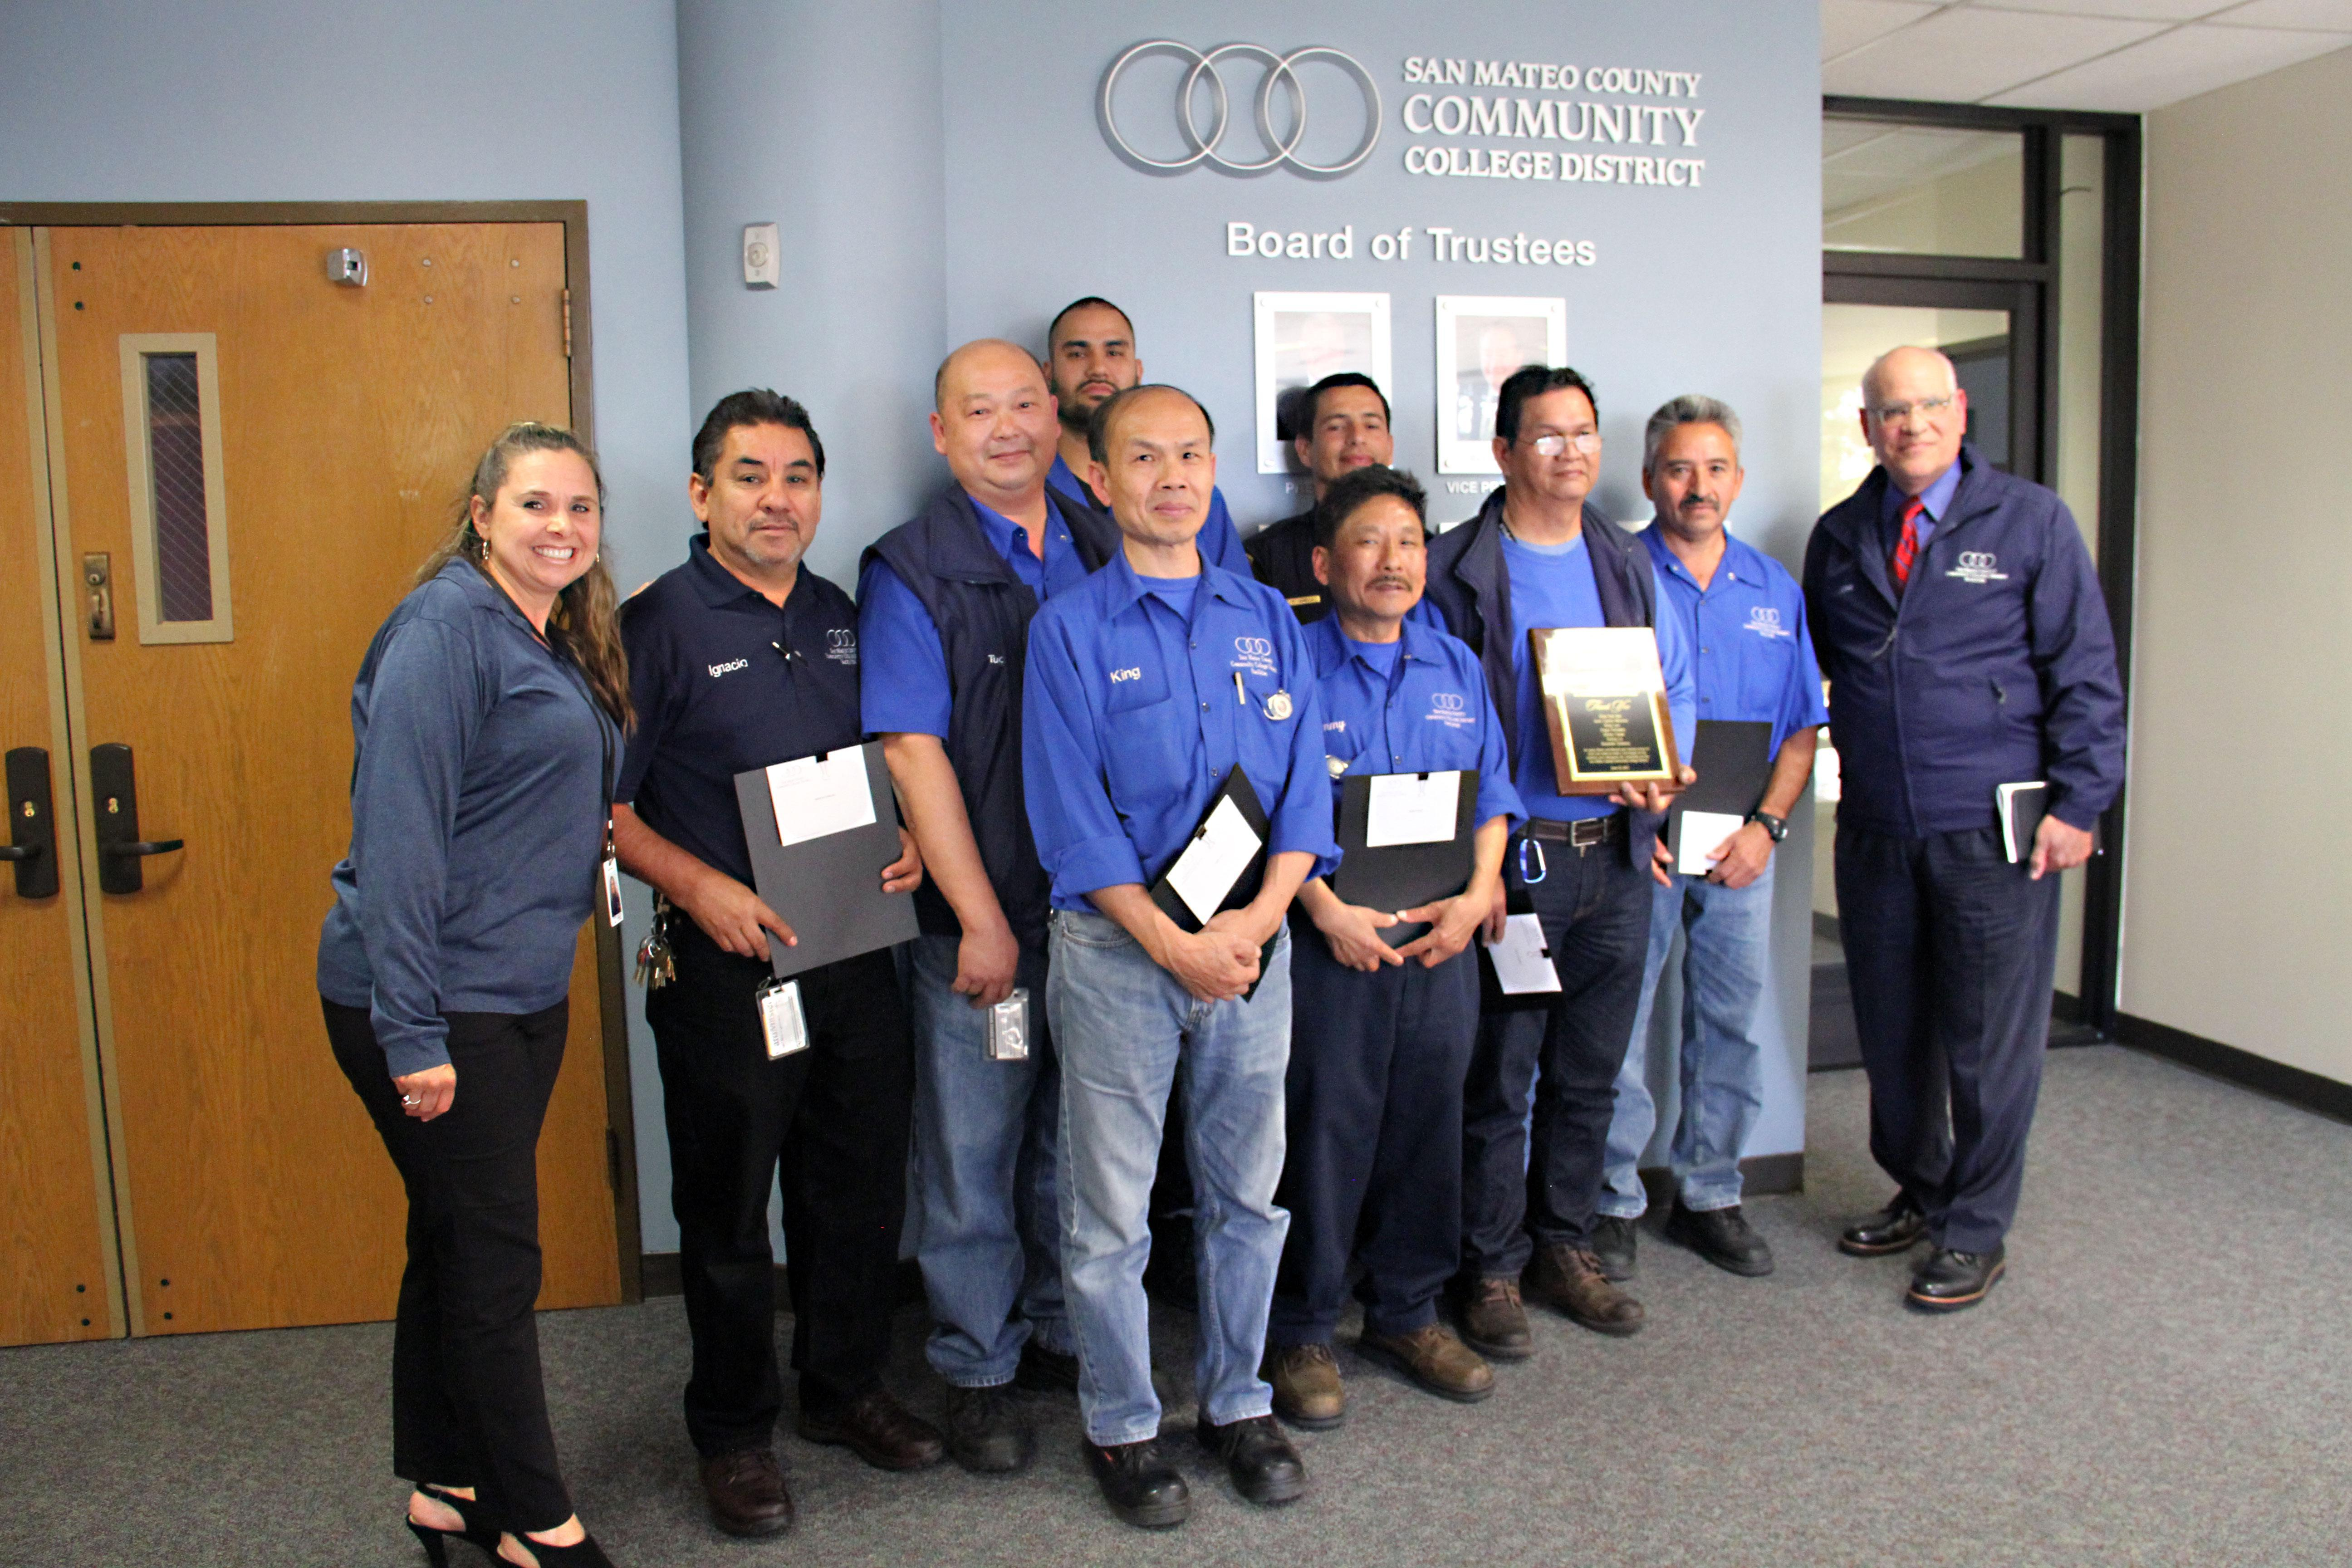 The San Mateo County Community College District Board recognized the Local 829 members at the June 14, 2017, meeting.